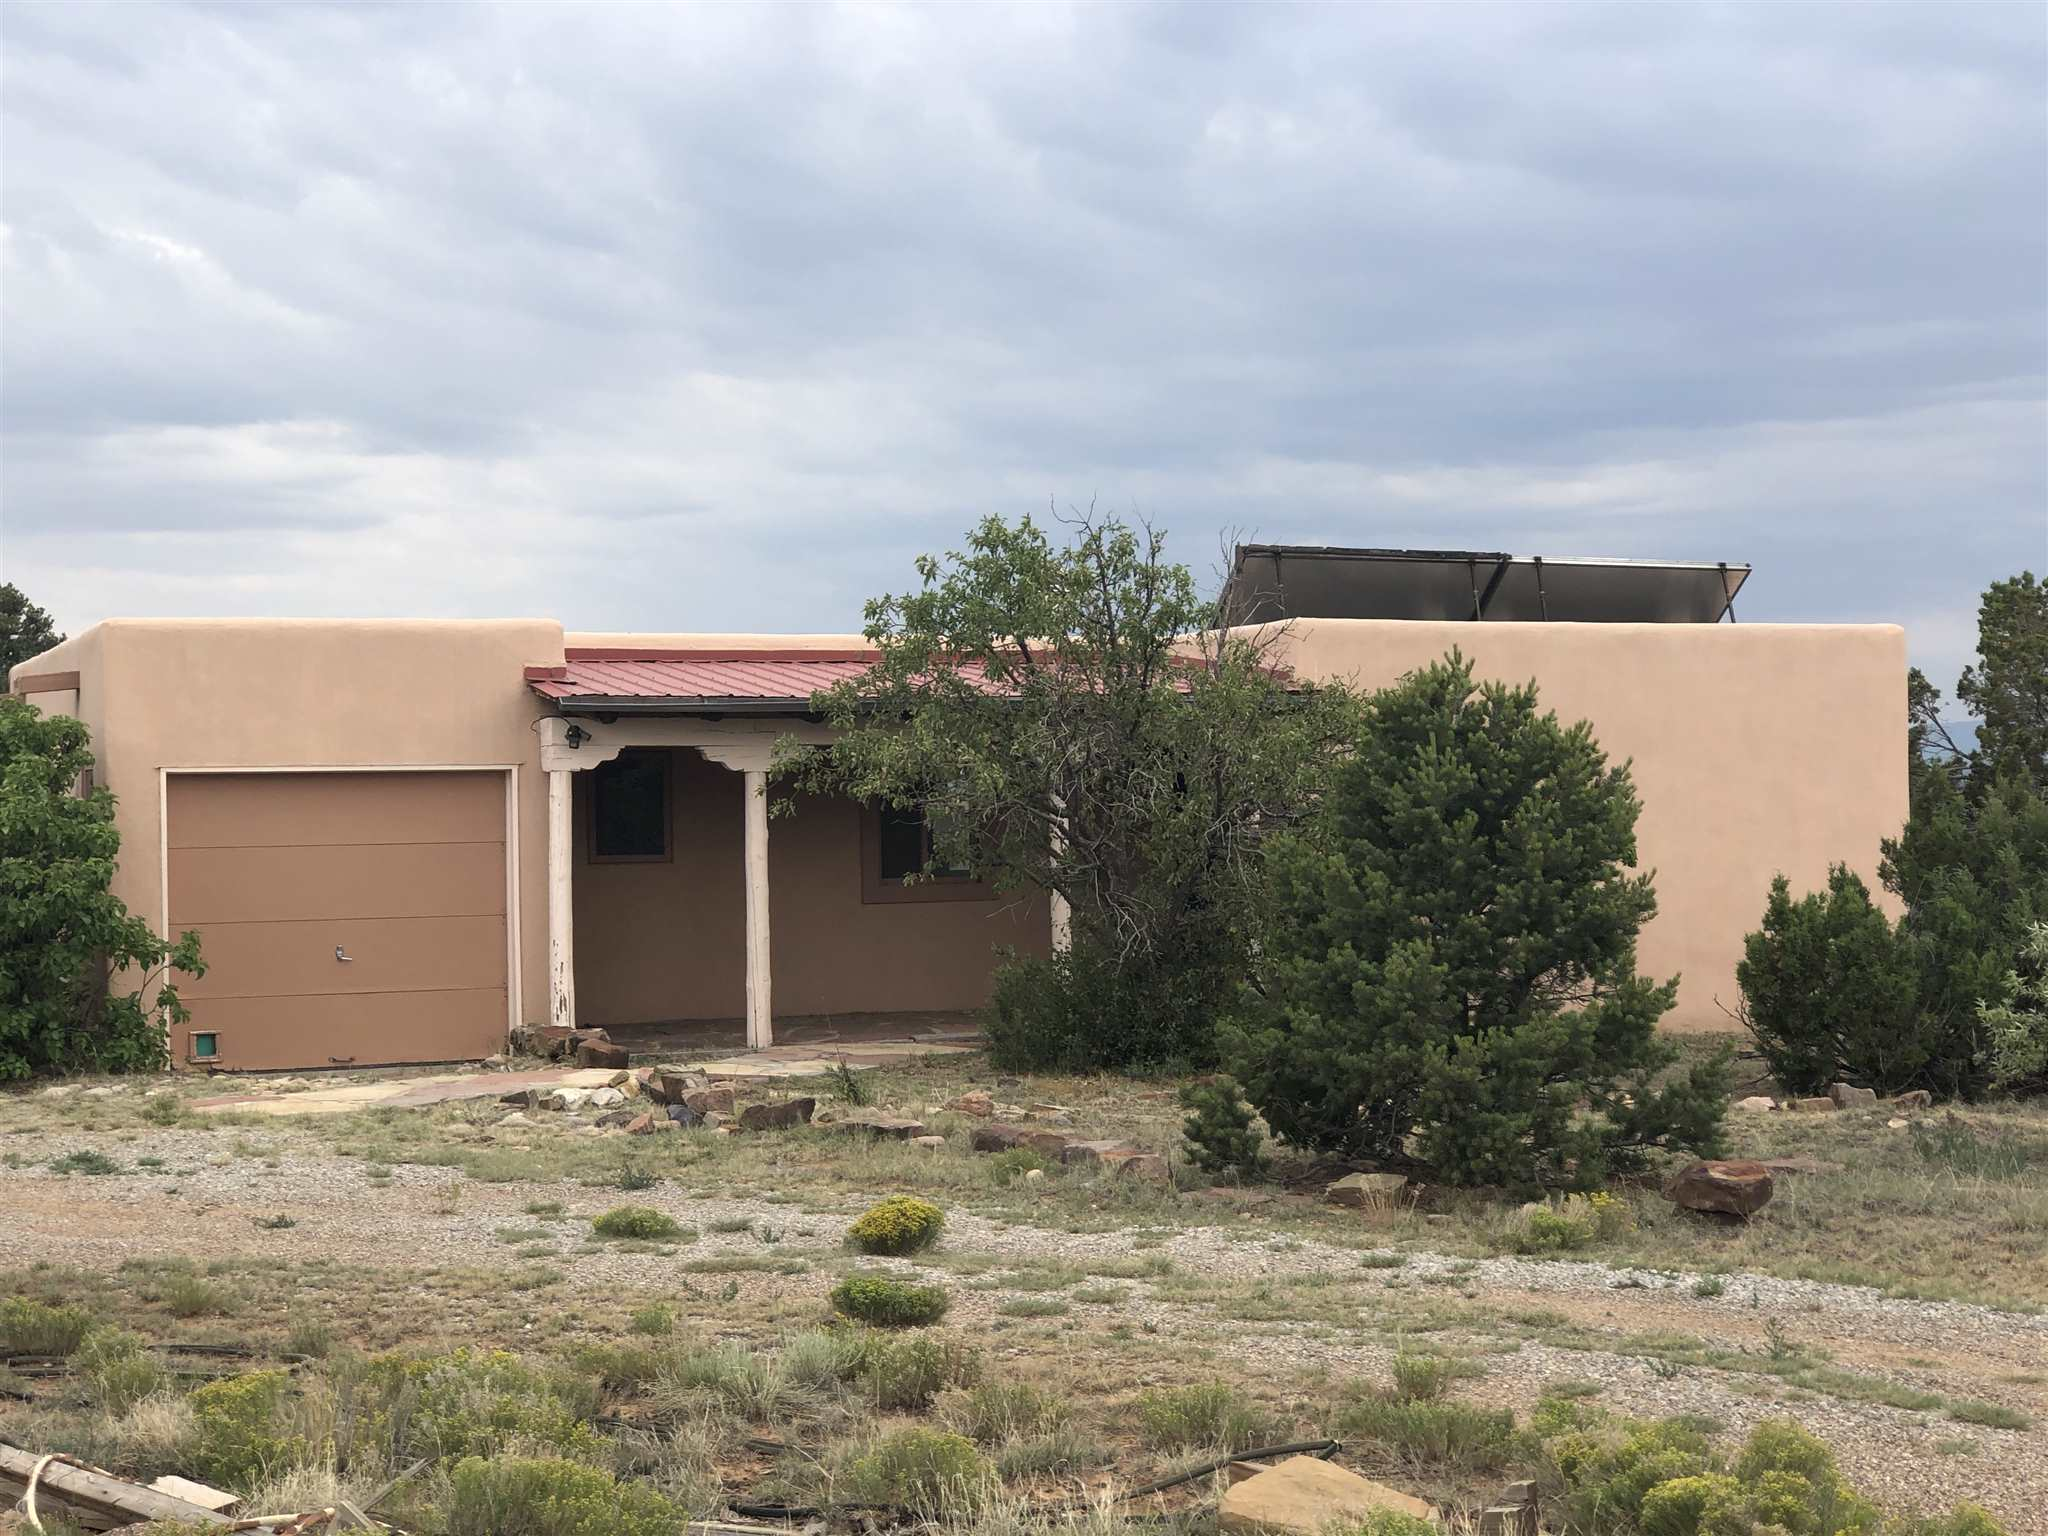 12 MARIPOSA, Santa Fe, New Mexico 87508, 2 Bedrooms Bedrooms, ,1 BathroomBathrooms,Single Family,For Sale,12 MARIPOSA,202100515